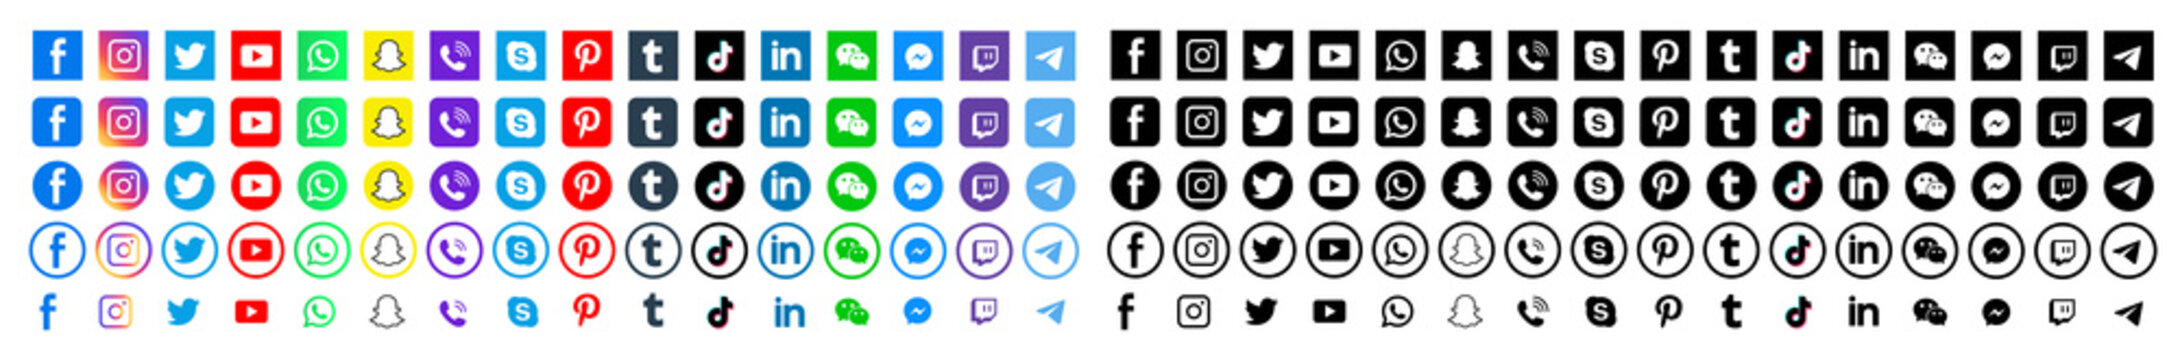 Social media icons illustration. facebook, twitter instagram and telegram, skype, youtube logo. Editorial illustration. Vinnitsa, Ukraine - January 12, 2020